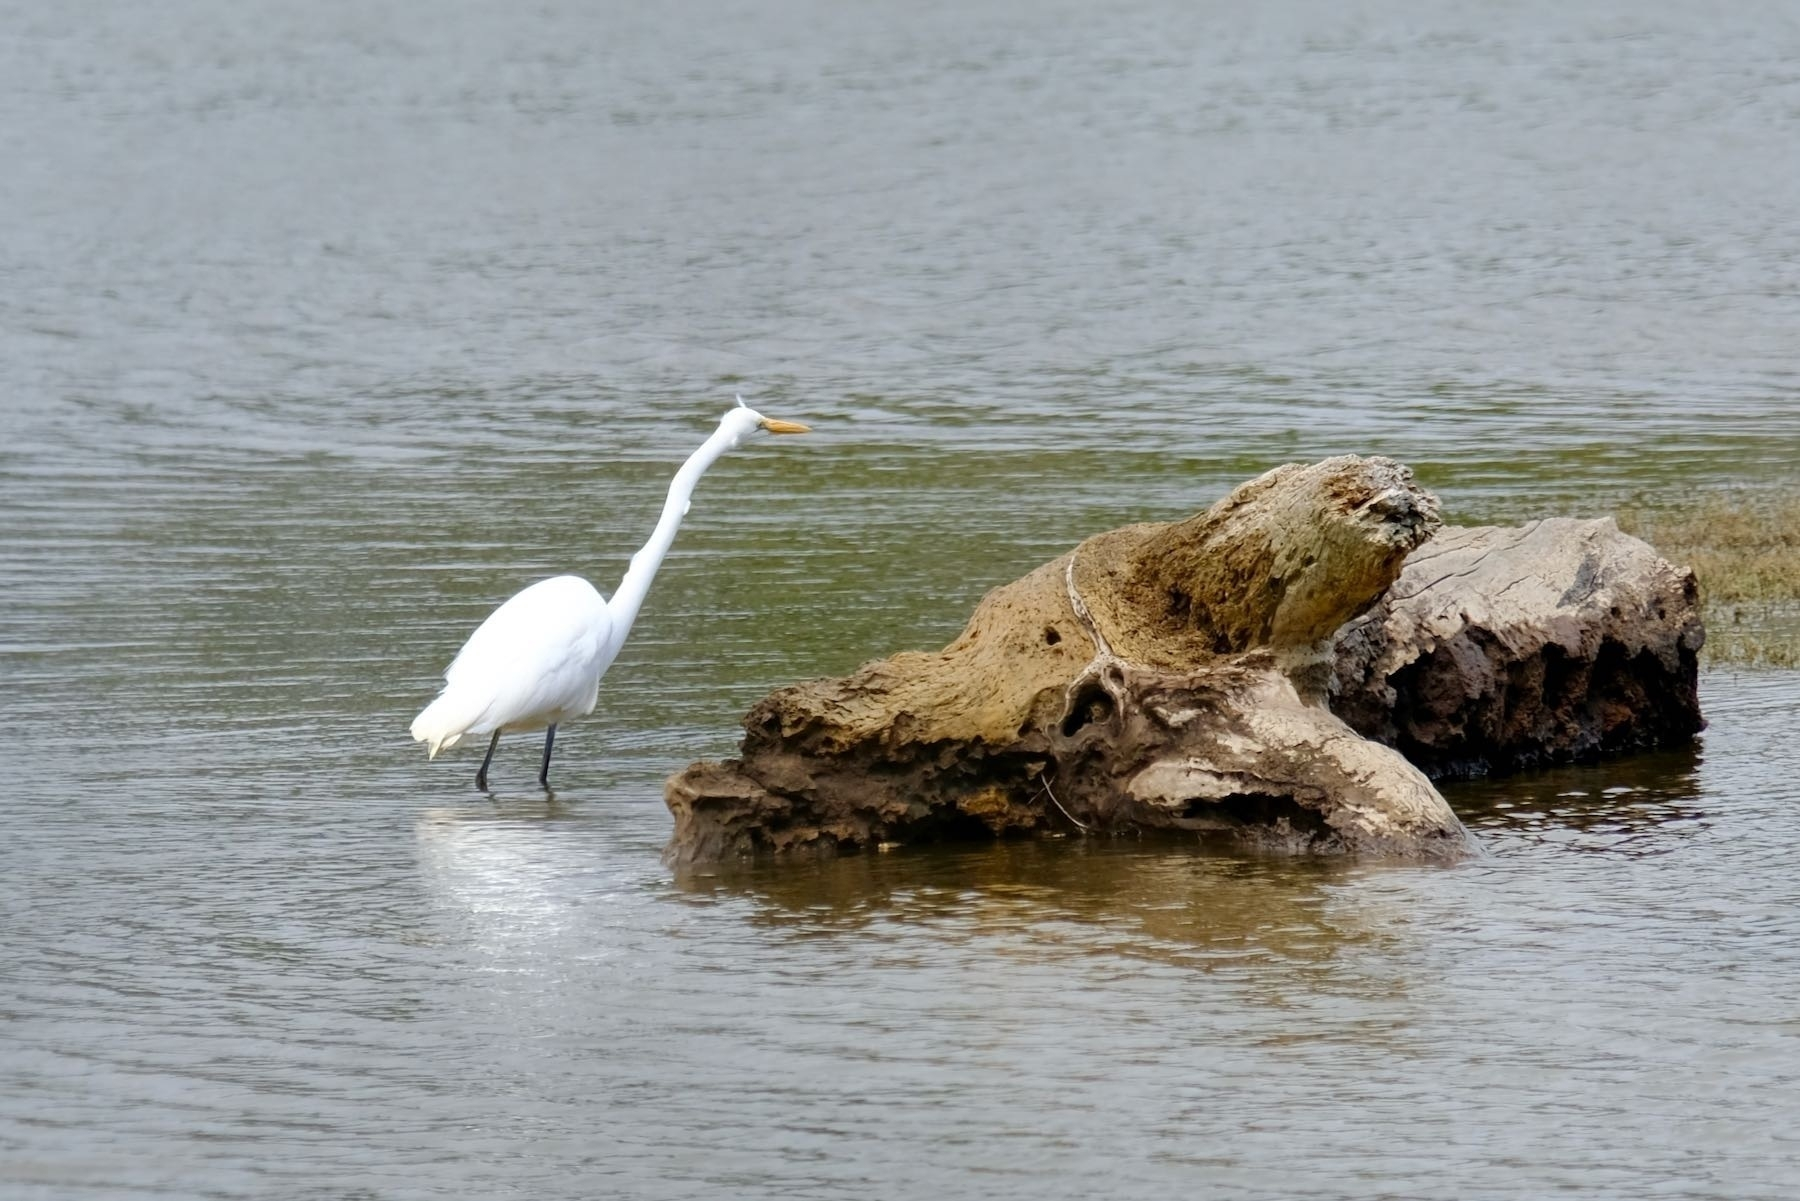 Large white bird with very long neck beside a rock.